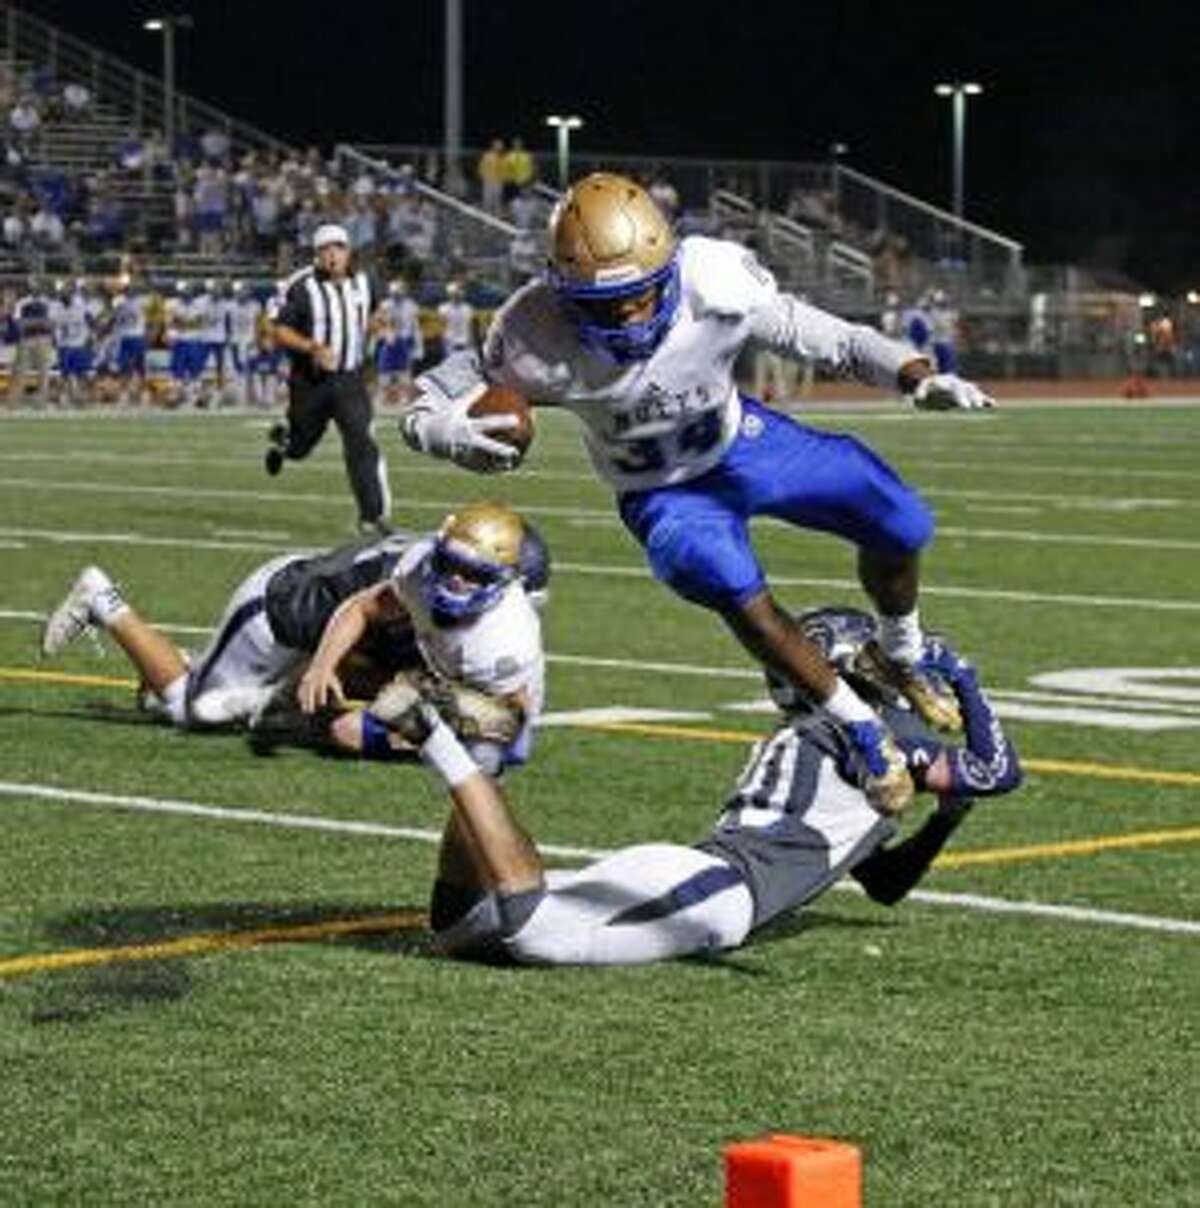 Alamo Heights Deryl Reynolds hurdles over Boerne Champion's Kaden Beavers for a TD from the District 26-5A high school football game between Alamo Heights and Boerne Champion on Friday, October 28, 2016. Alamo Heights will soon replace their turf on their field with the same turf used by the Dallas Cowboys and Houston Texans. (Staff photo)